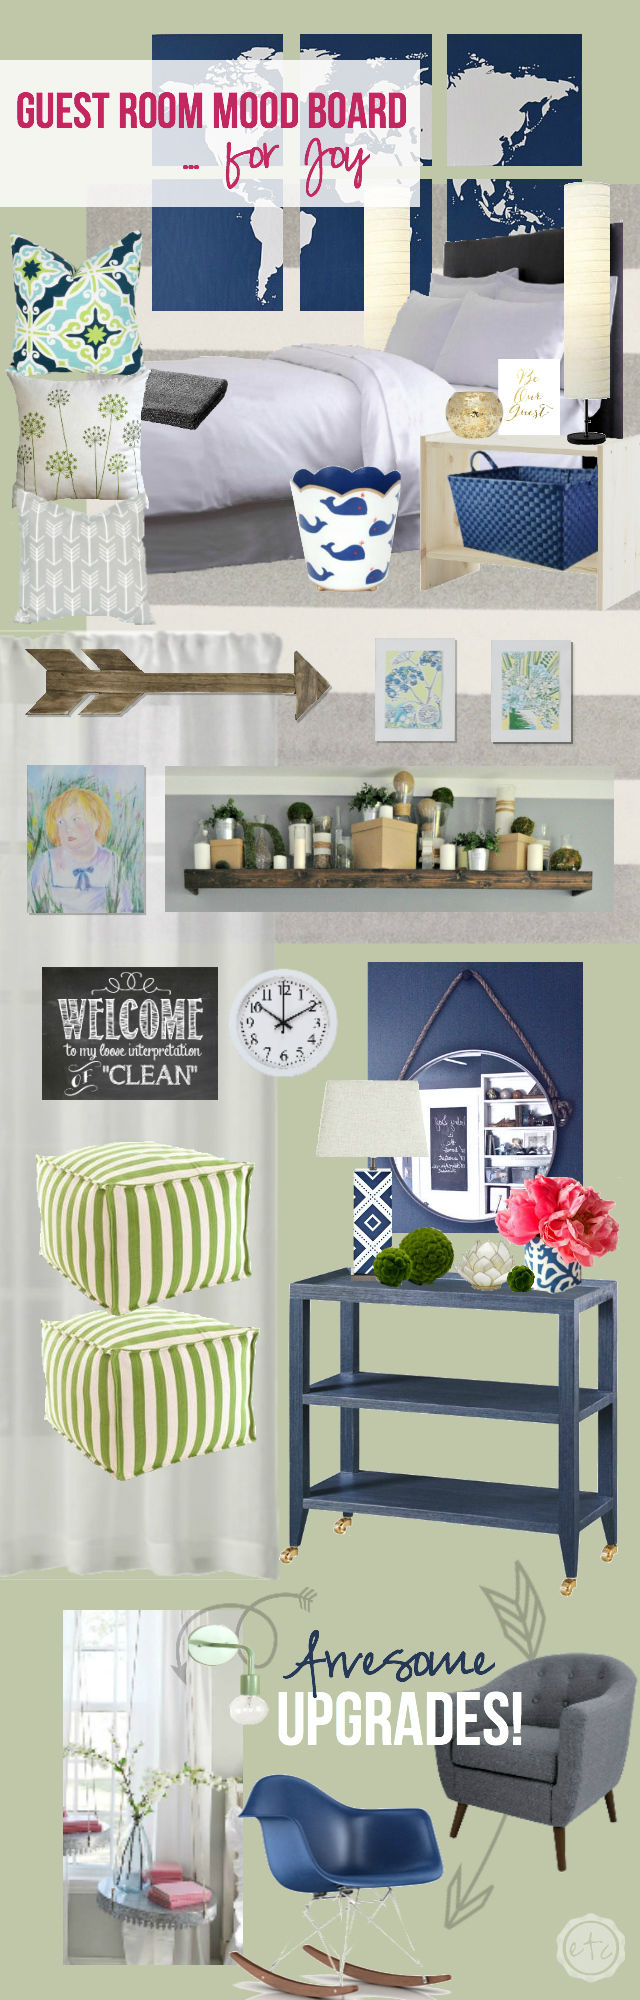 Guest Room Mood Board... for Joy! with Happily Ever After, Etc.